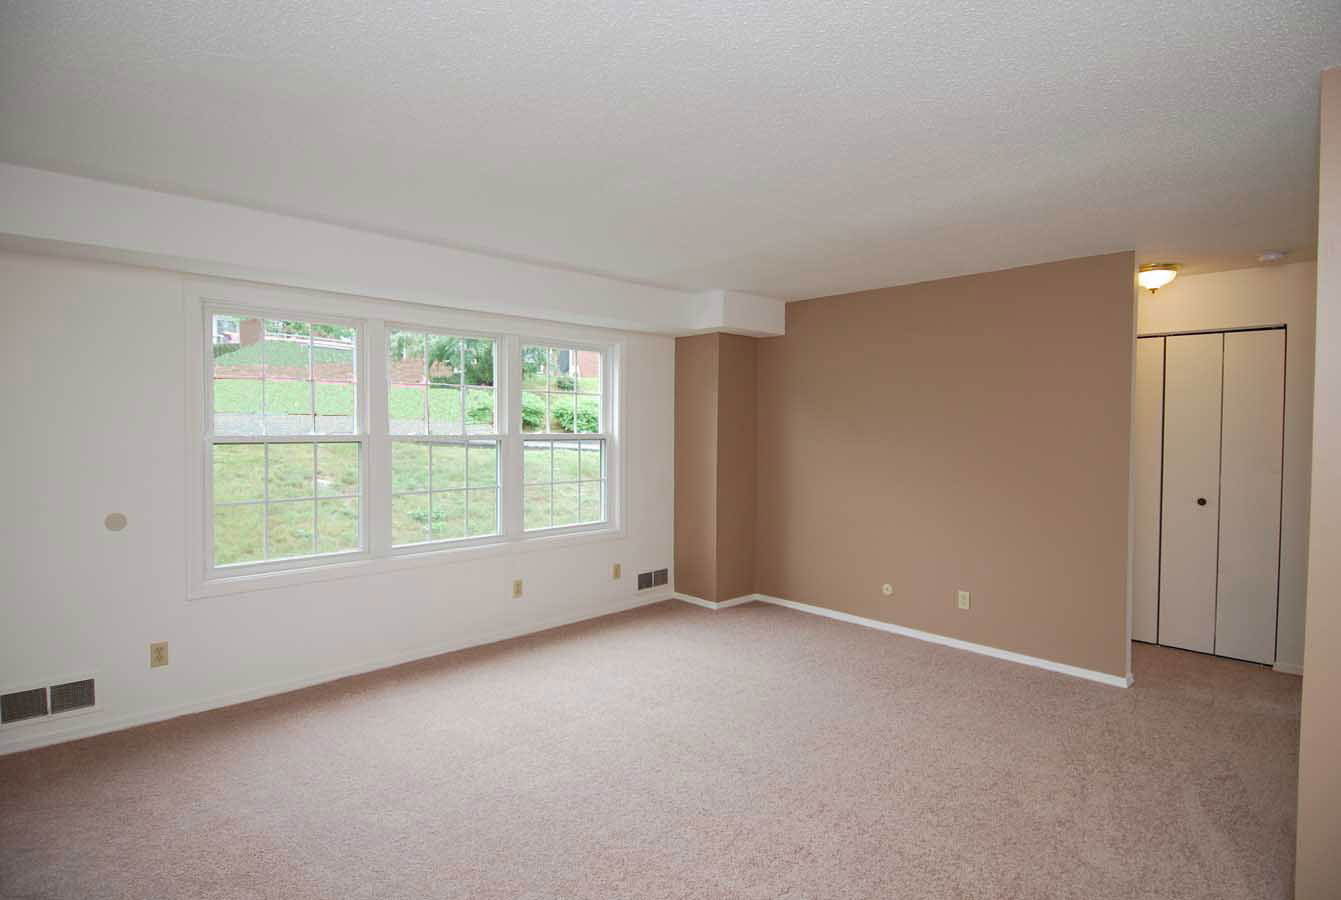 1 Bedroom Apartment in Manchester NH at Wellington Terrace ...